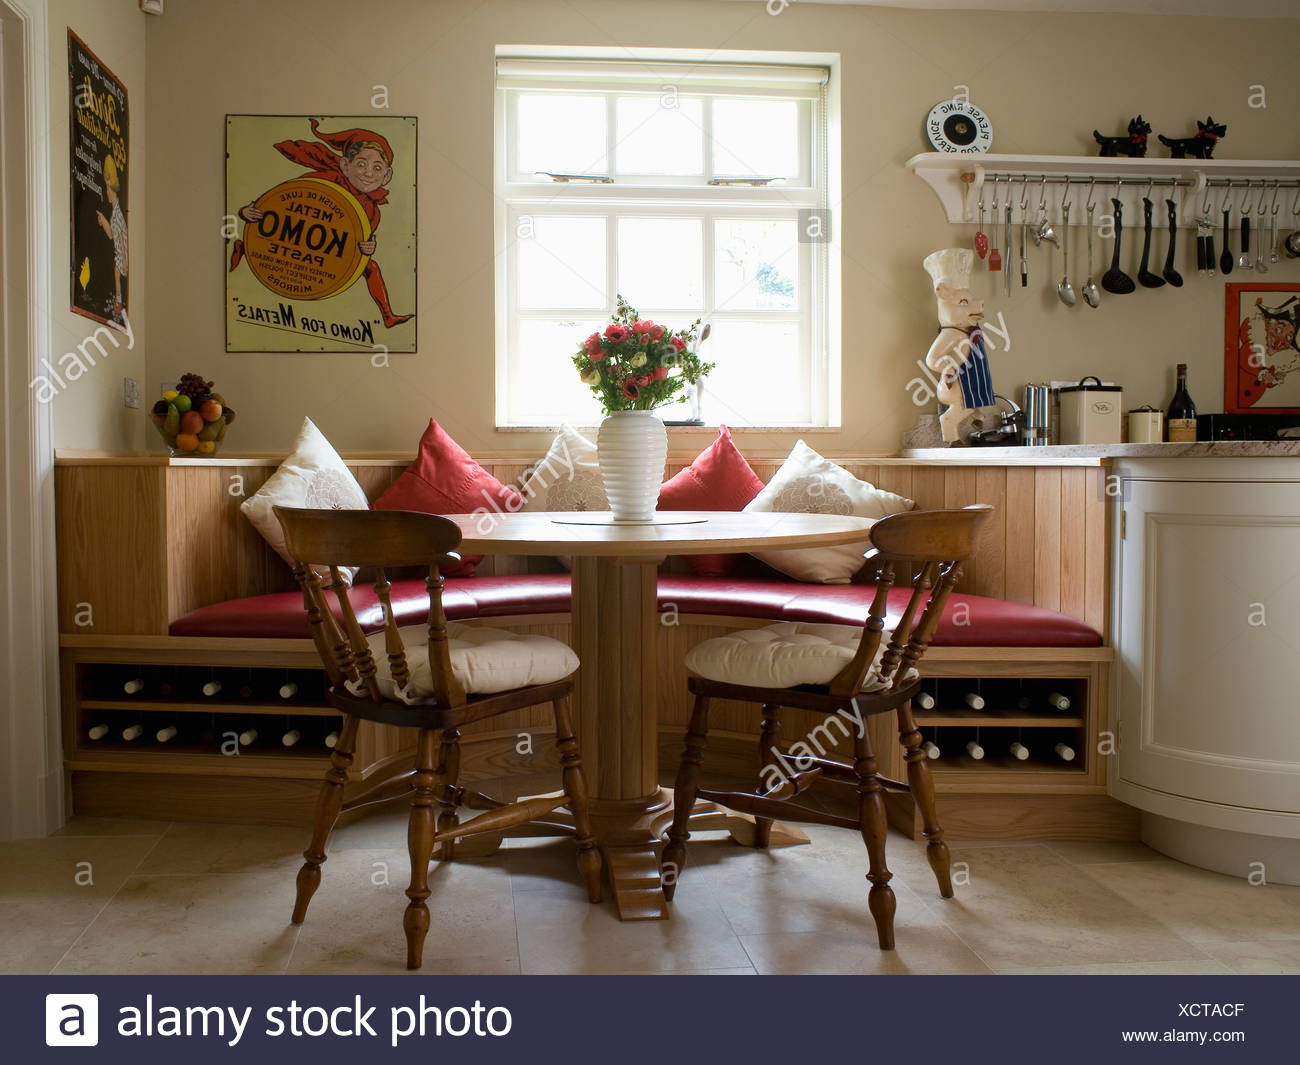 Circular table and wooden chairs in kitchen dining room with ...